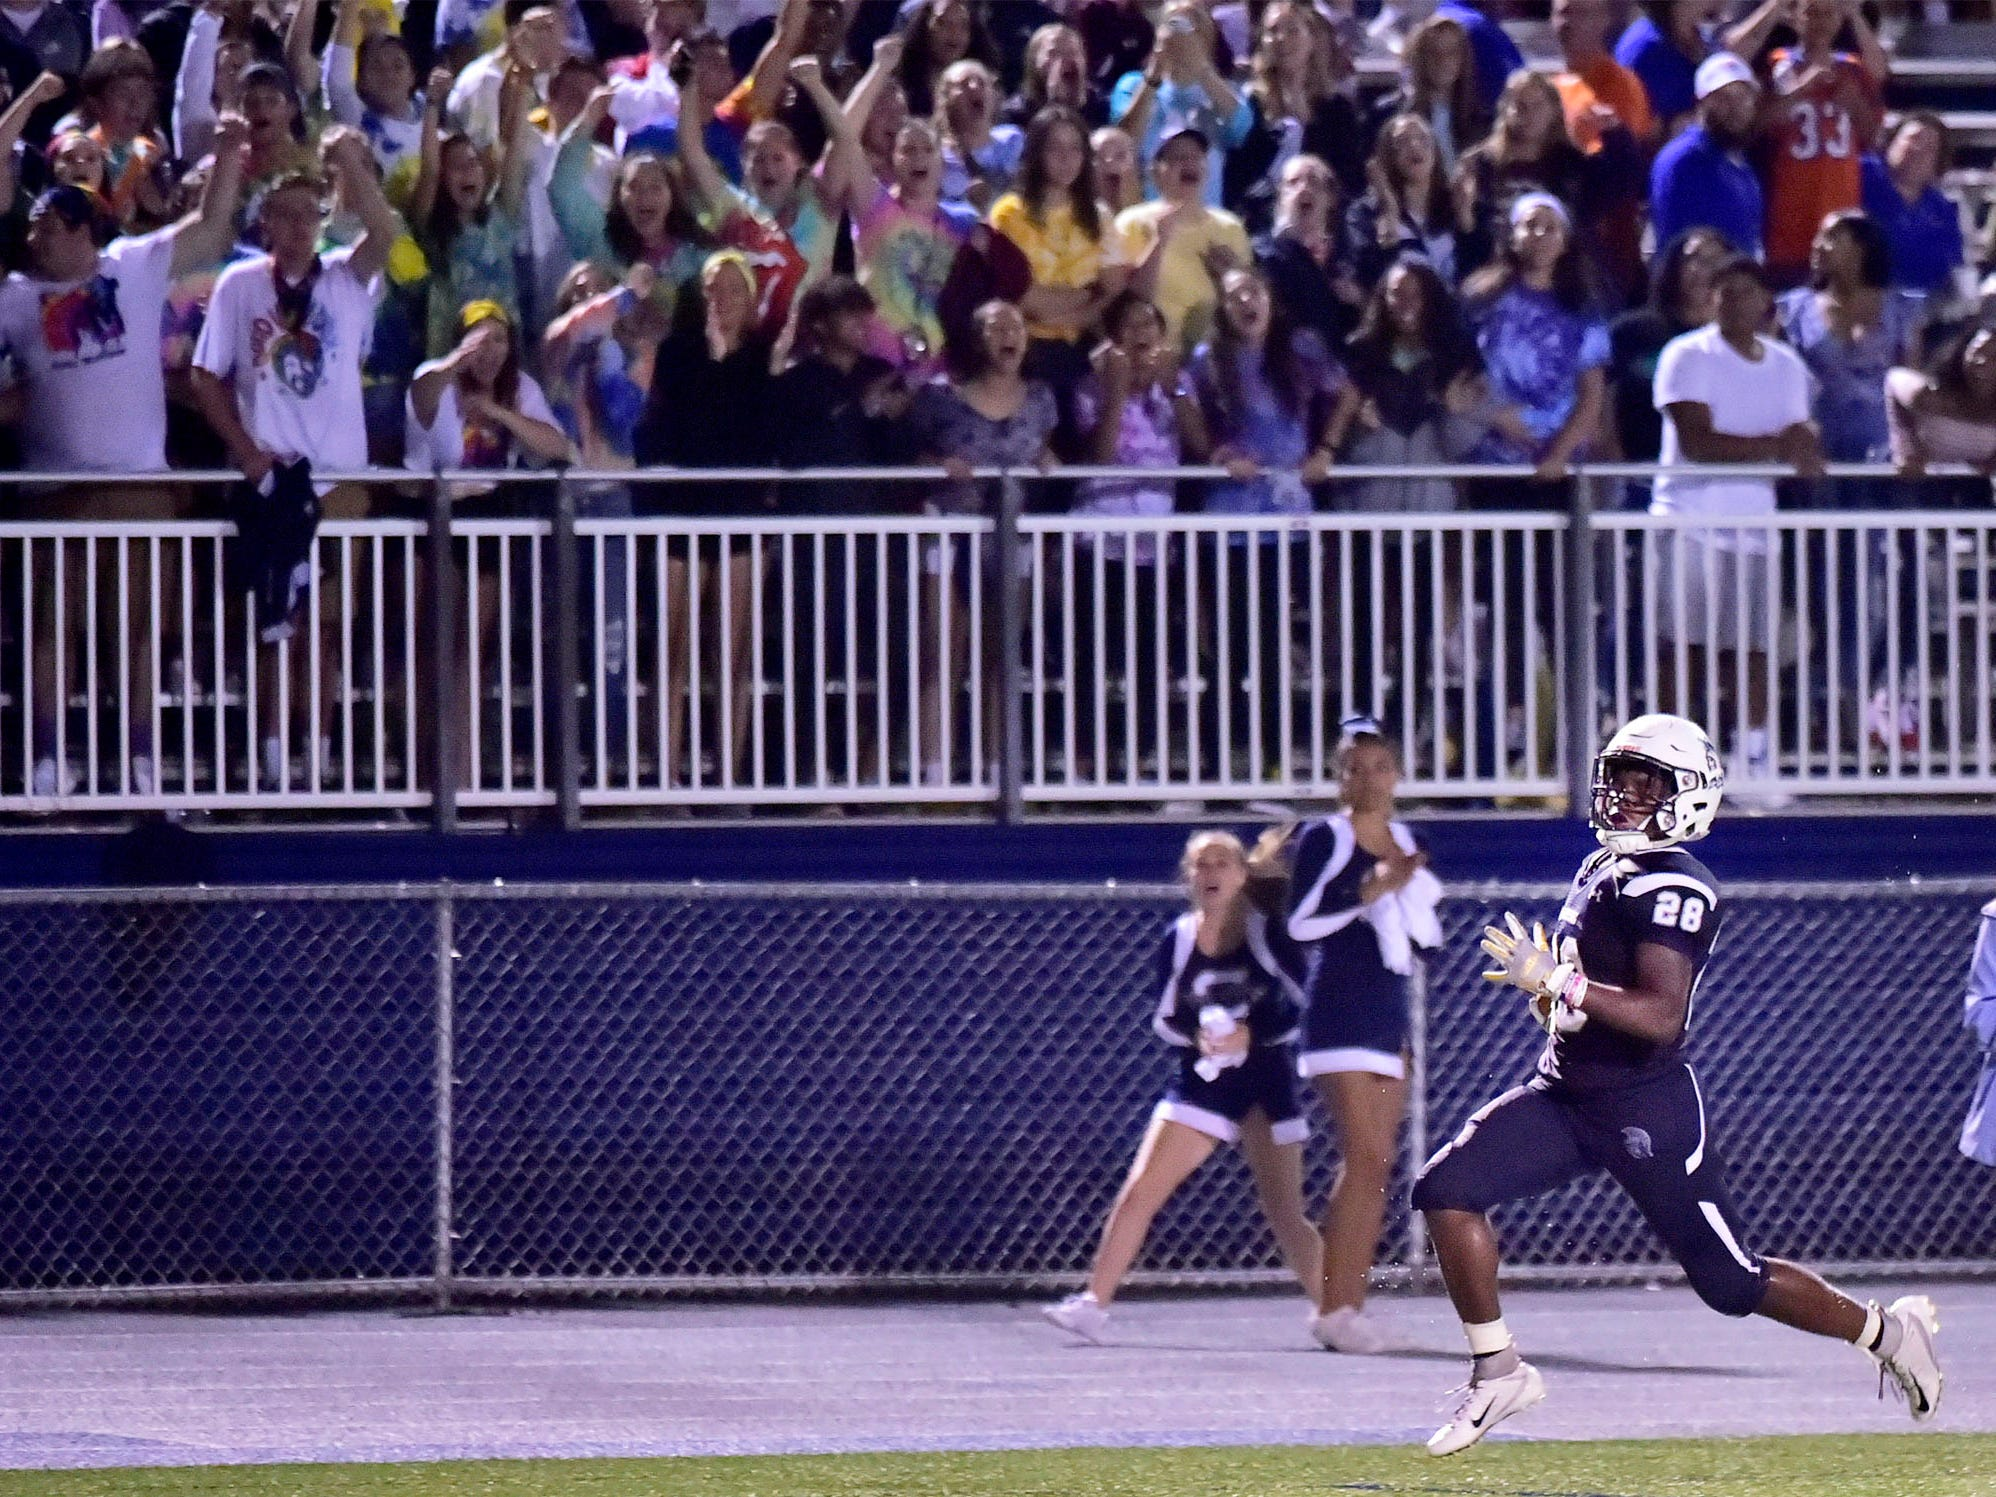 Fans react a Chambersburg's Keyshawn Jones takes the ball to the end zone. Chambersburg defeated Red Lion 28-19 in PIAA football on Friday, Sept. 7, 2018.